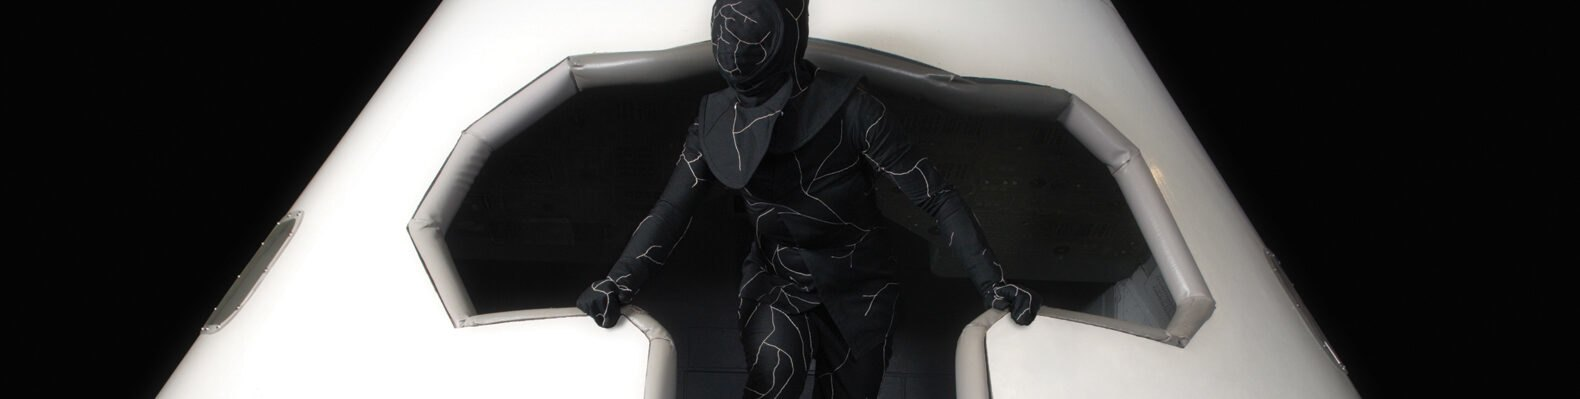 person wearing black suit